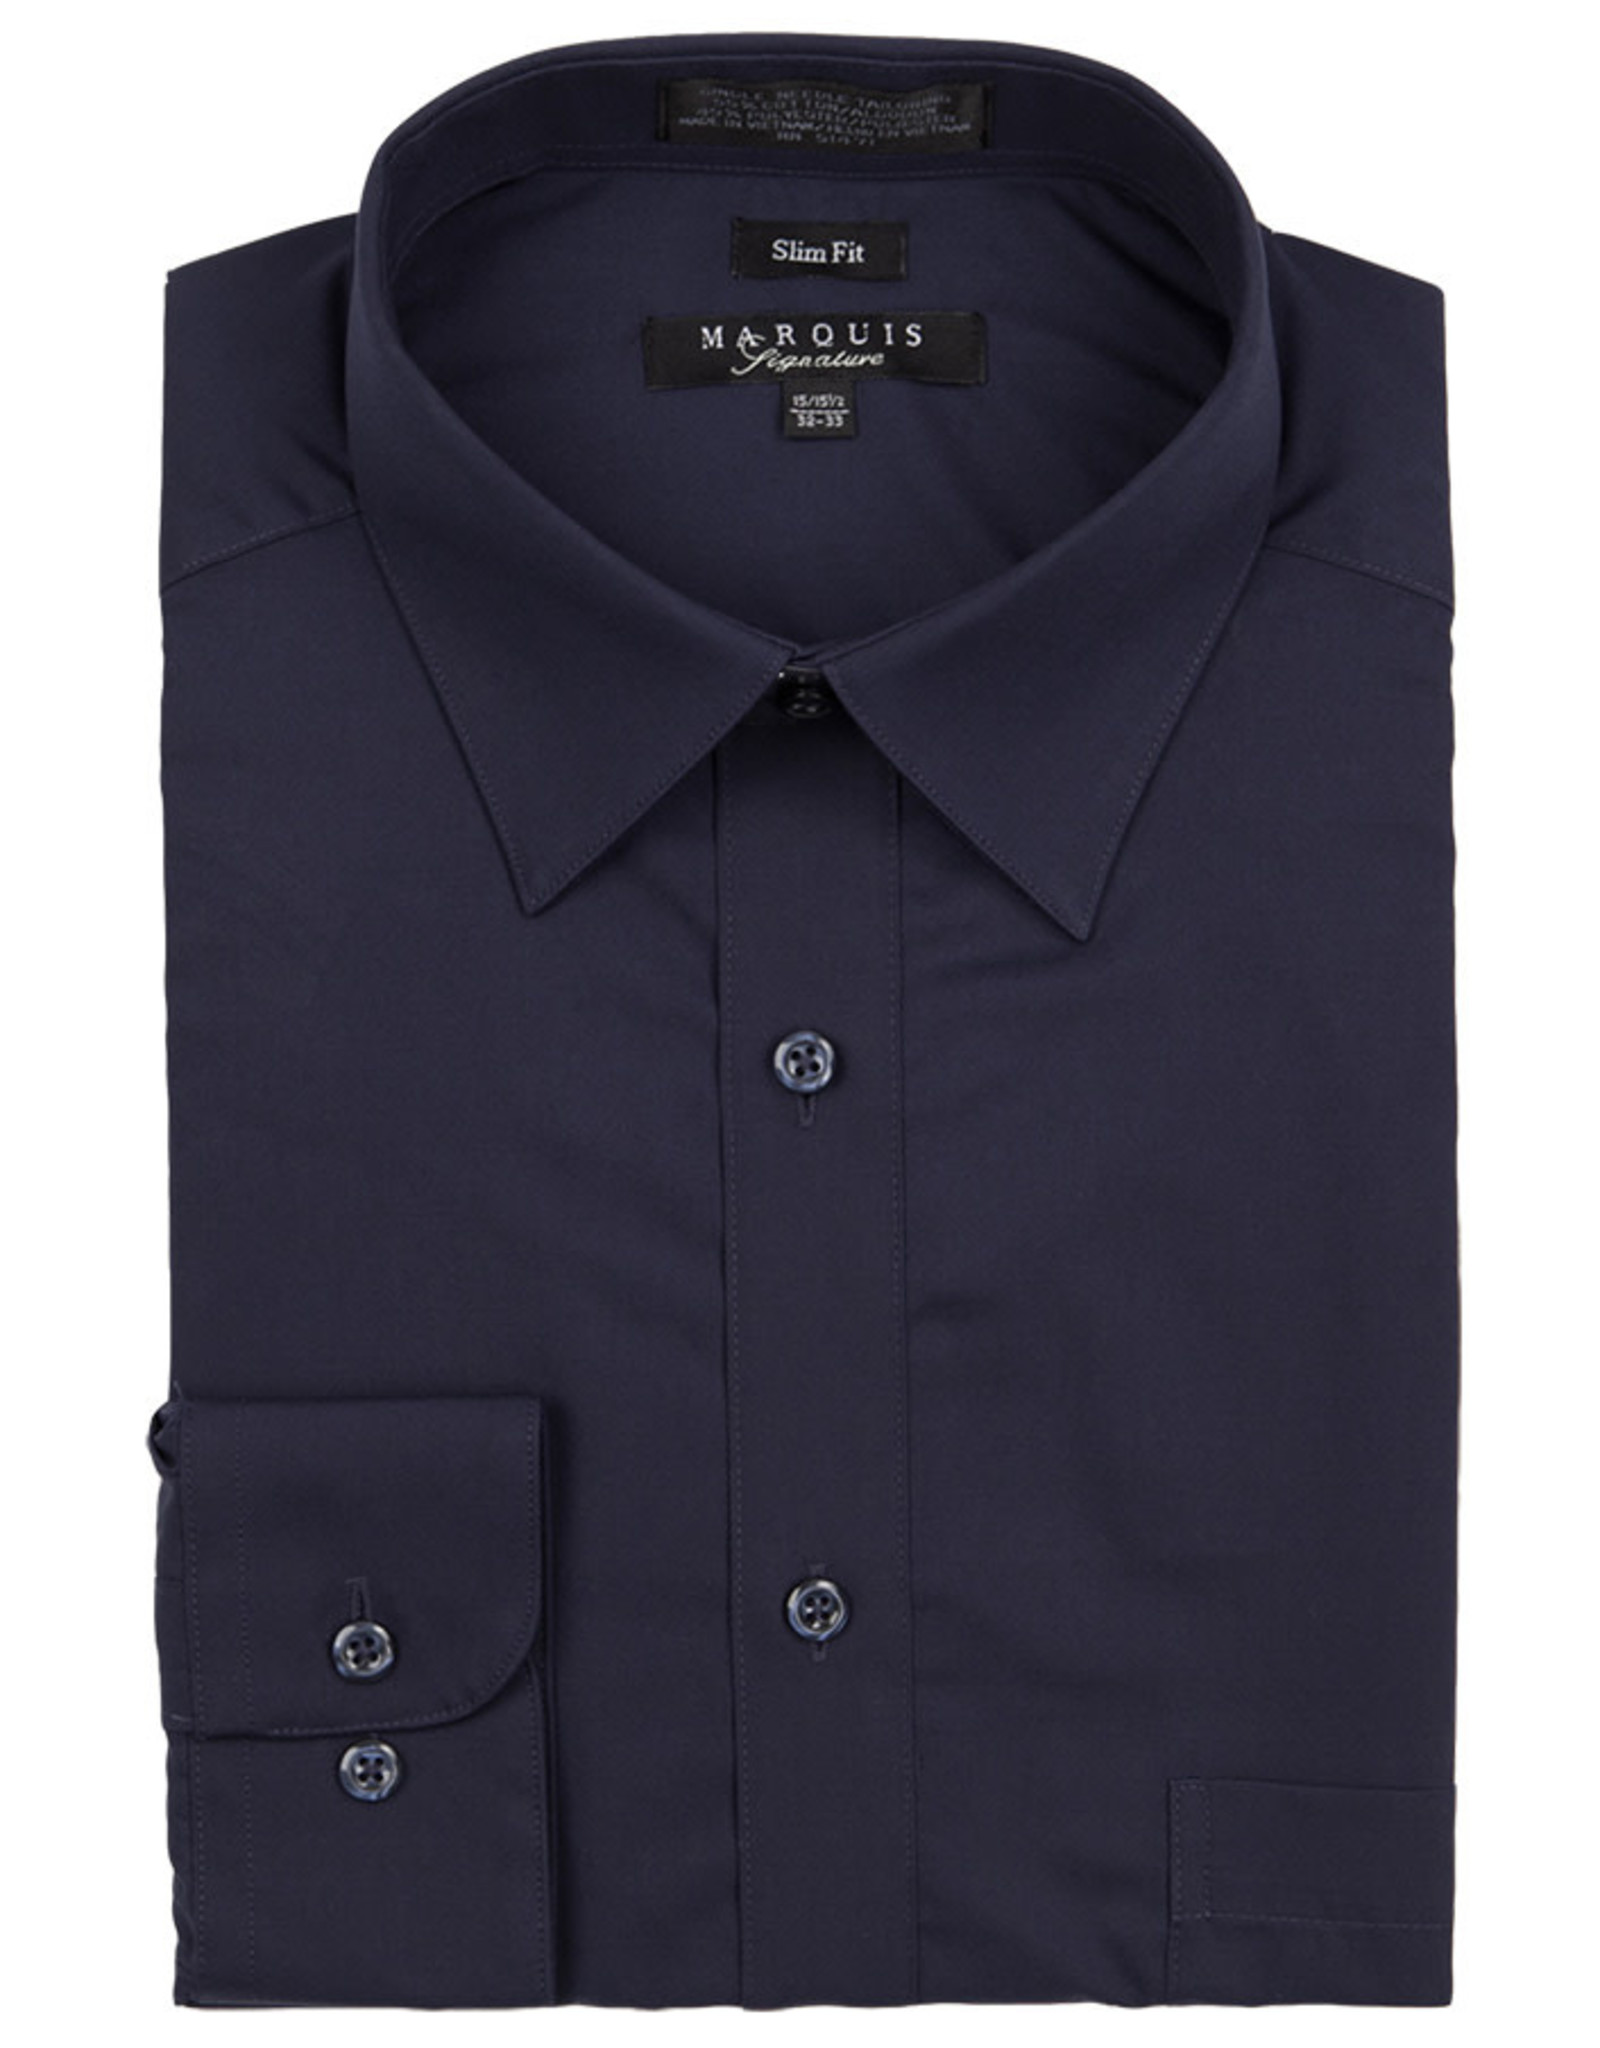 Marquis Dress Shirt MarQuis Slim Fit Navy